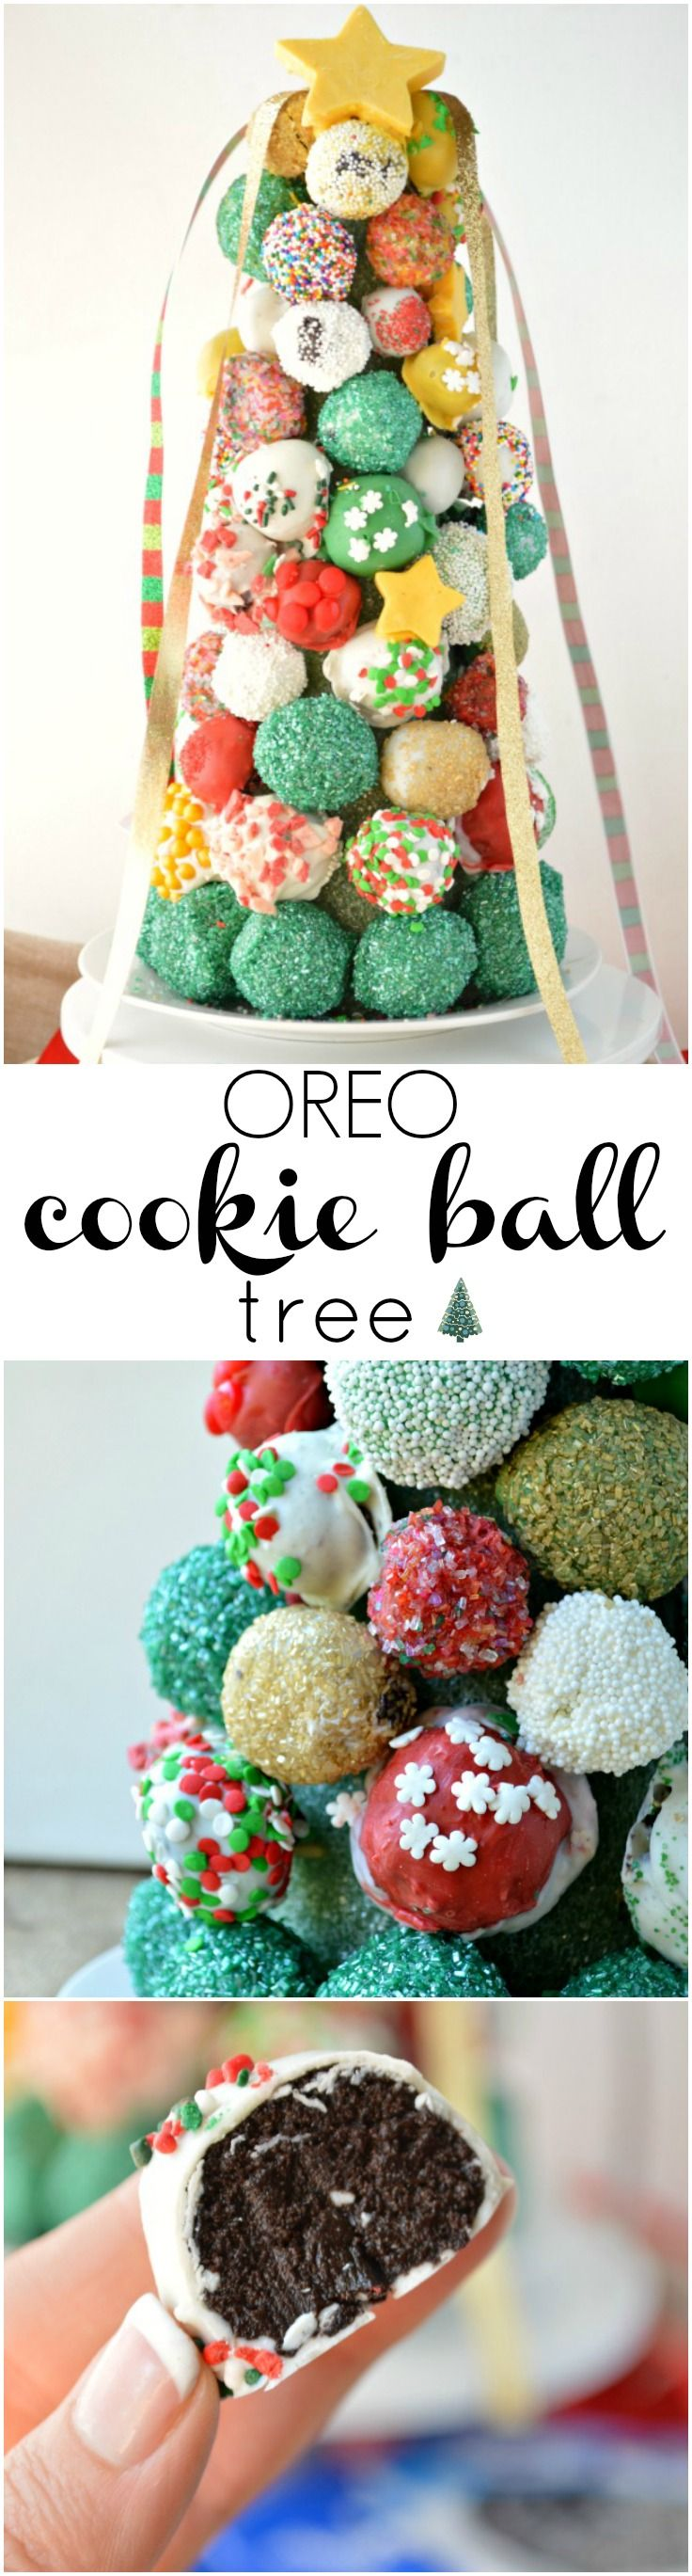 1521 best Cooking Christmas Baking Treats images on Pinterest